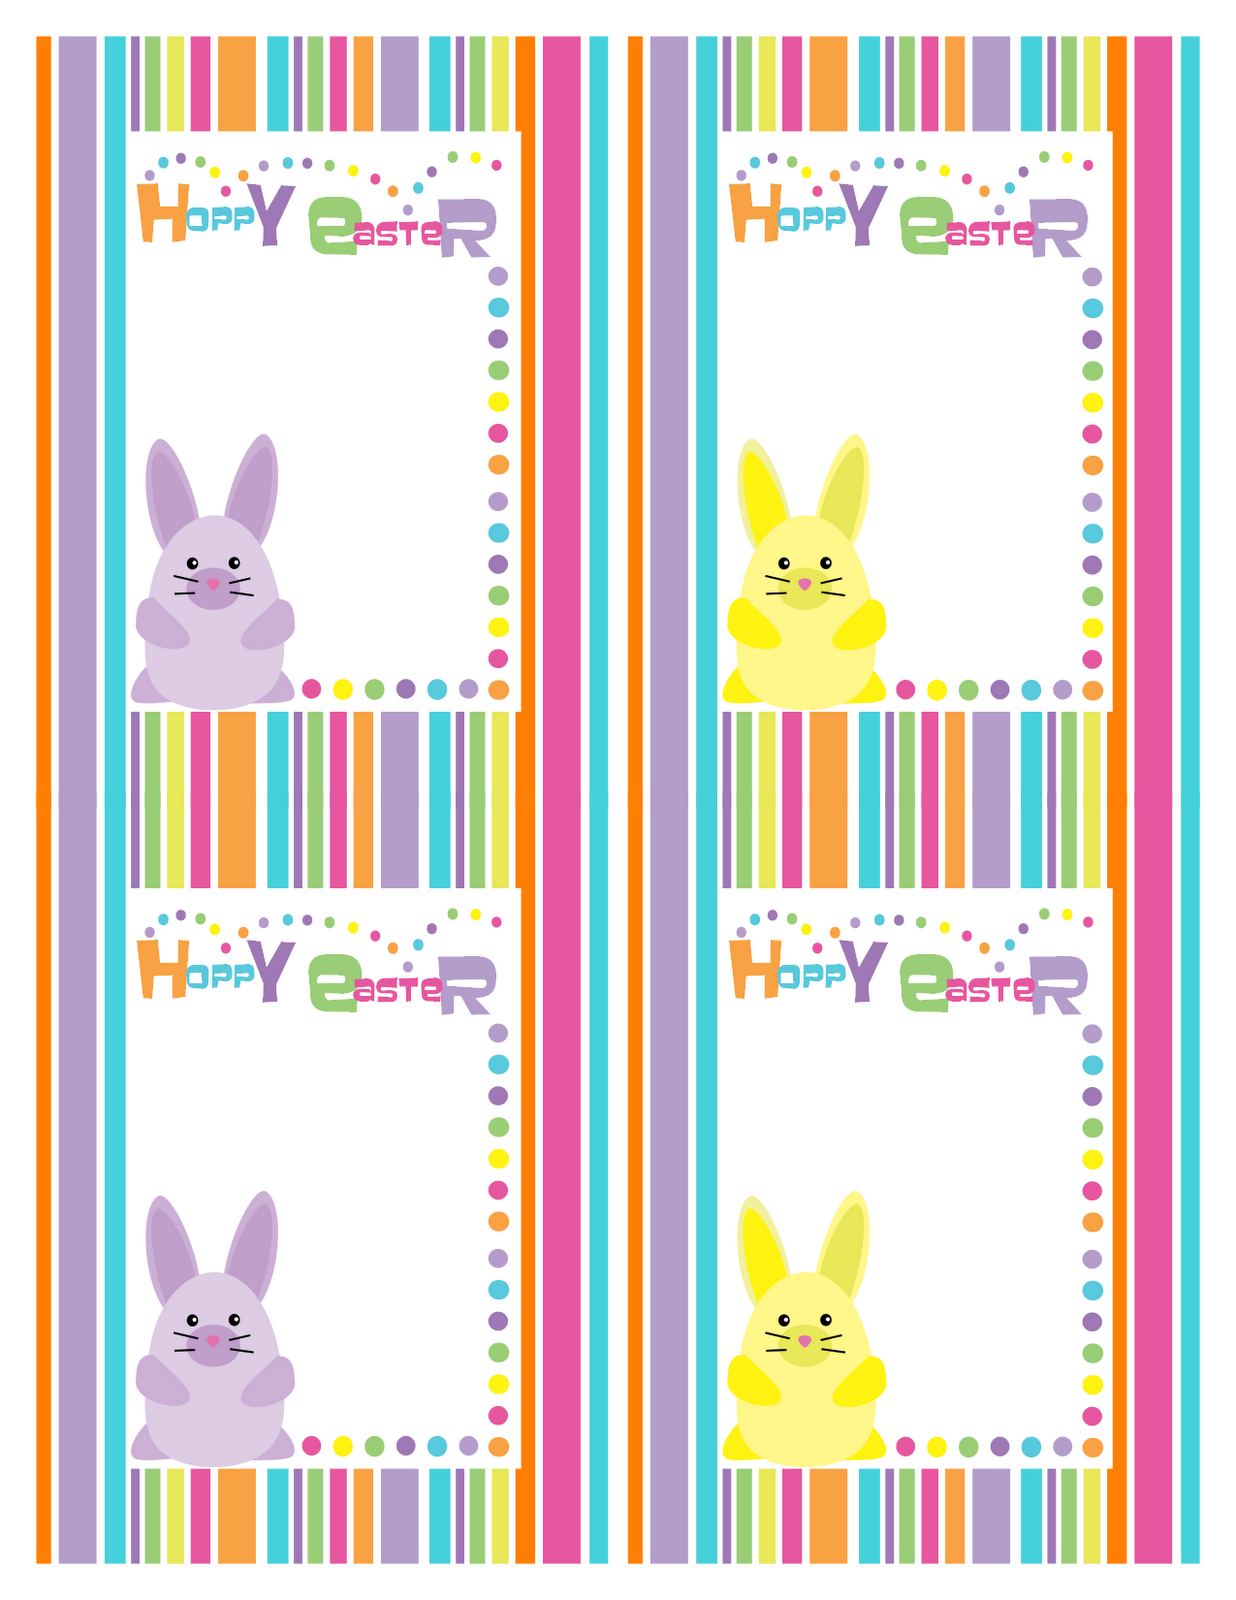 Bunny stripe hoppy easter cards free download cute printables bunny stripe hoppy easter cards free download cute printables template negle